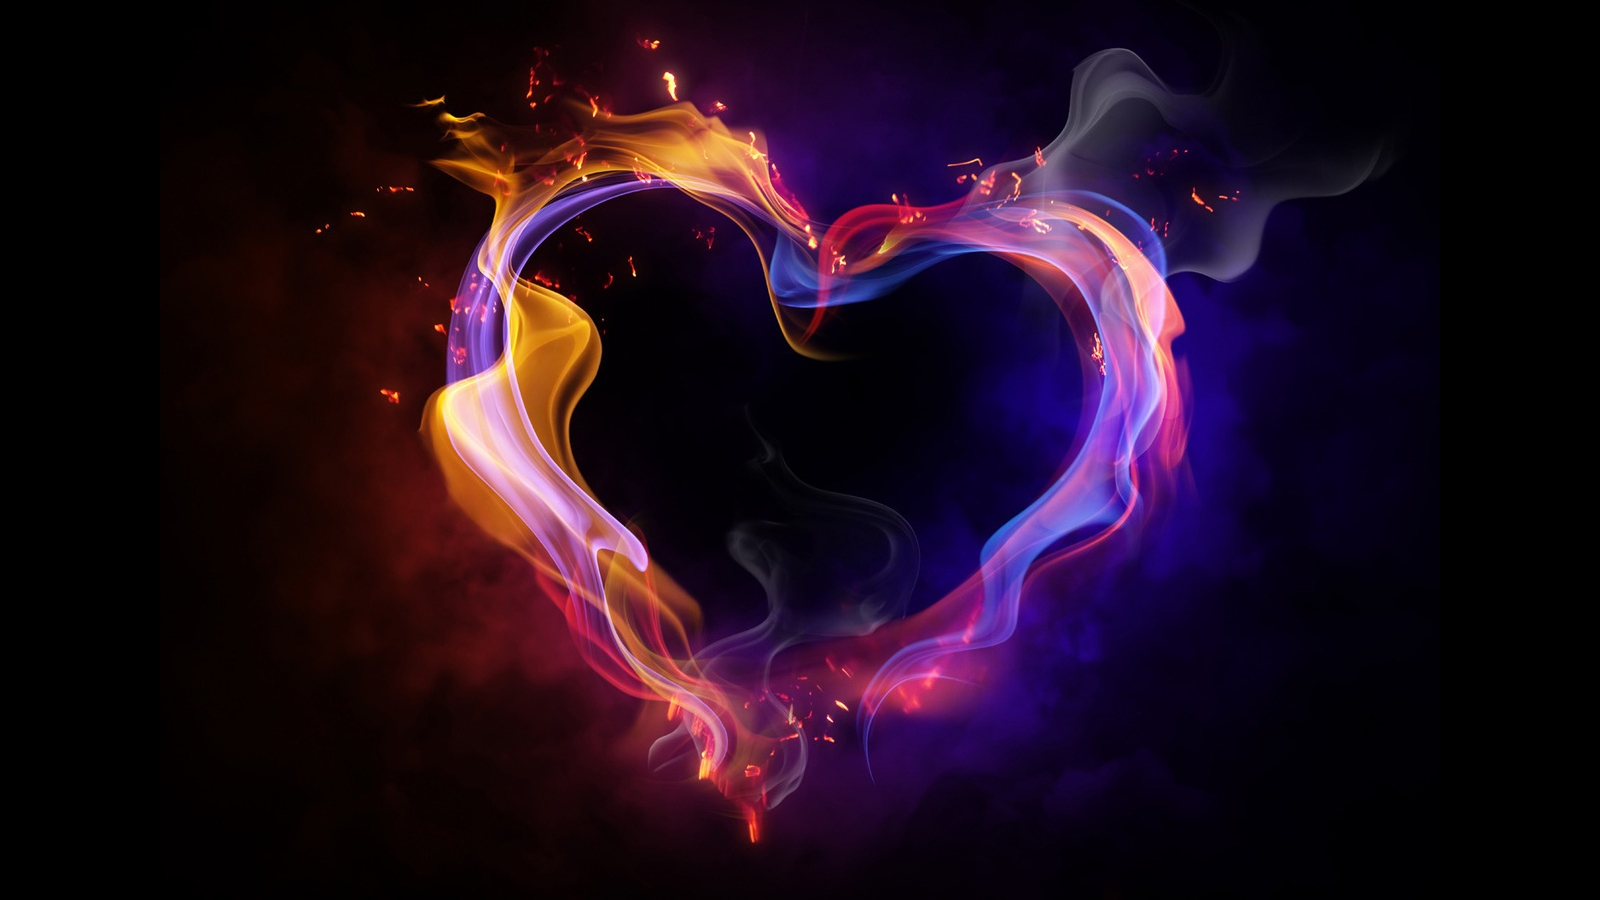 Free Download Nickname Fire Heart Love Hd Wallpaper 1080p Resolotion 1600px 1600x1200 For Your Desktop Mobile Tablet Explore 42 Hd Wallpaper Love Couple 1920x1080 Romantic Love Couple Hd Wallpapers